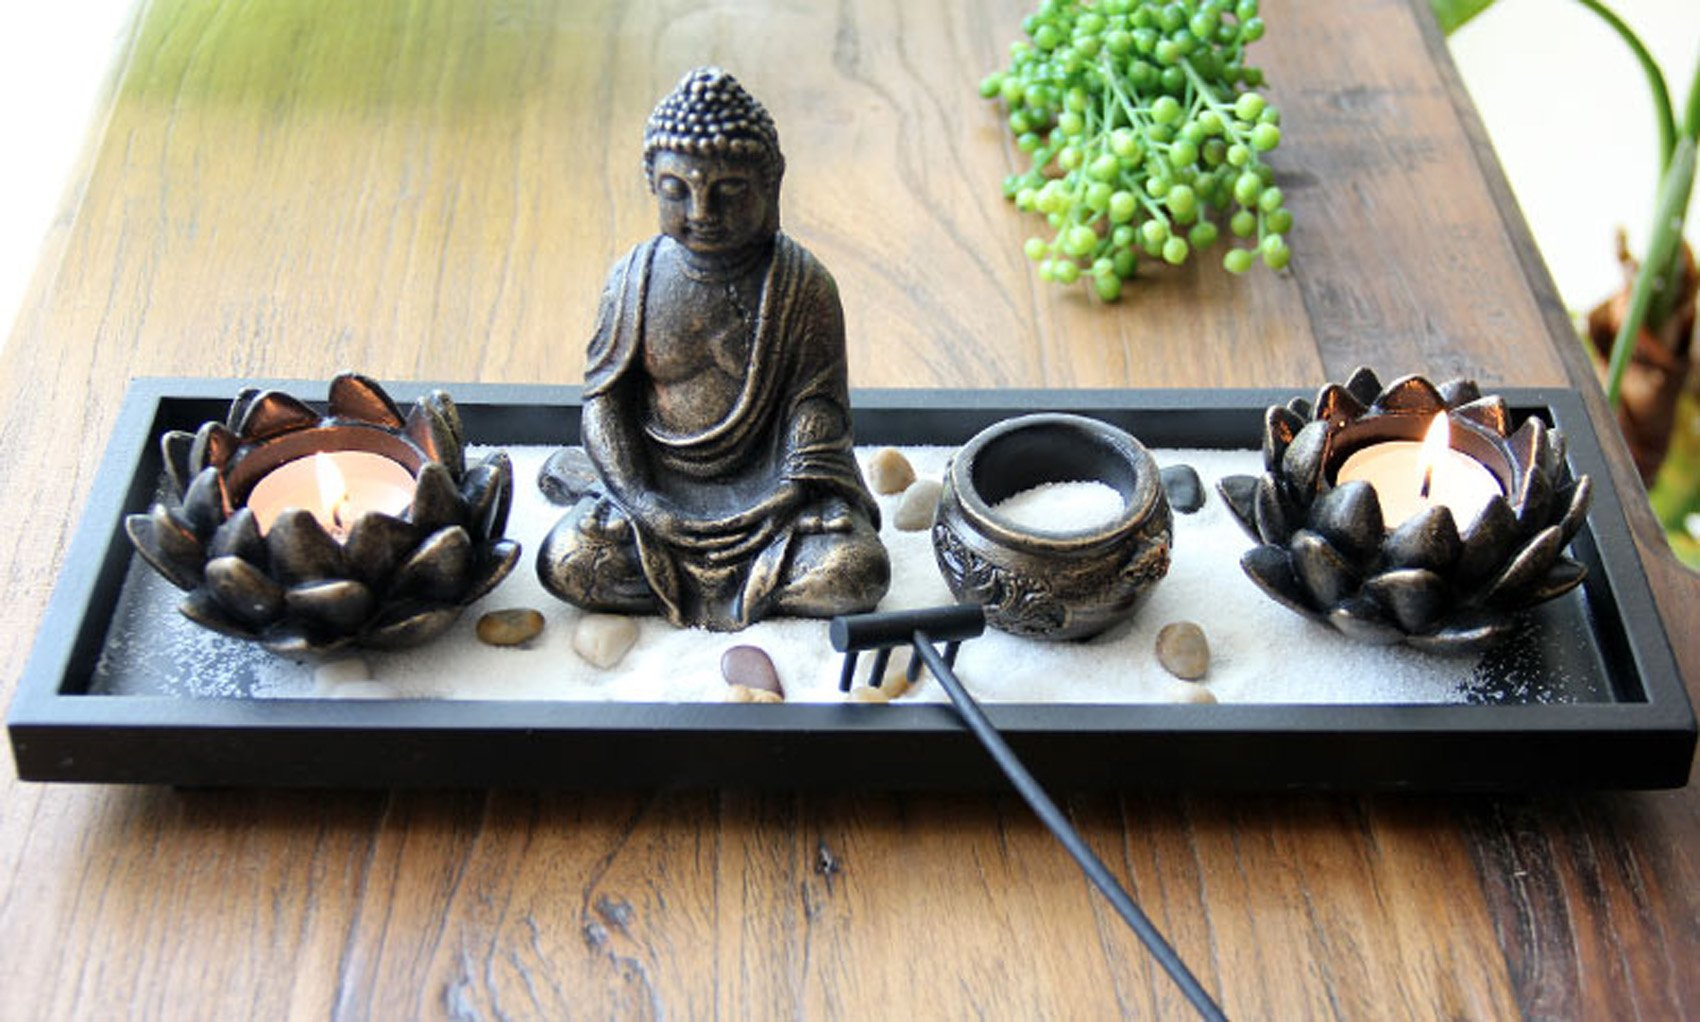 Feng Shui Tabletop Zen Garden Buddha Rock Rake Sand Candle Incense Burner Home Decor Gift (KT00034) ~ We Pay Your Sales Tax by We pay your sales tax (Image #2)